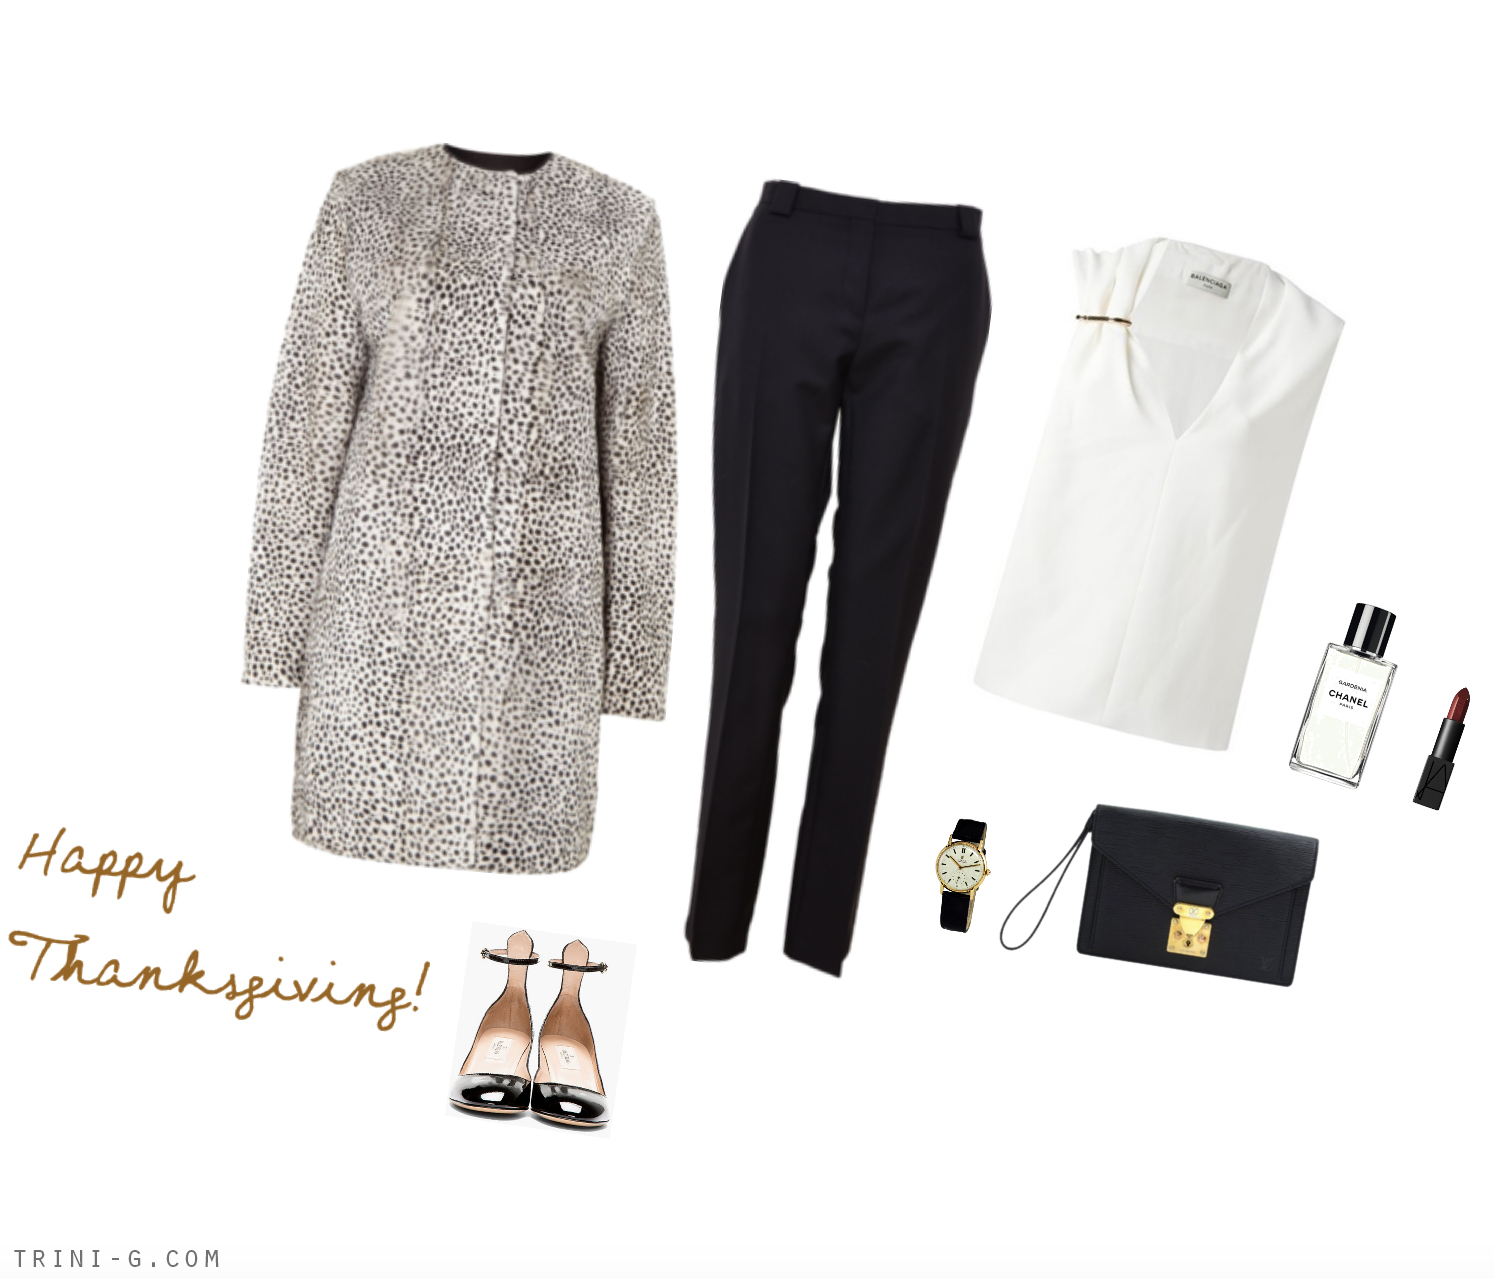 Trini blog | Thanksgiving outfit